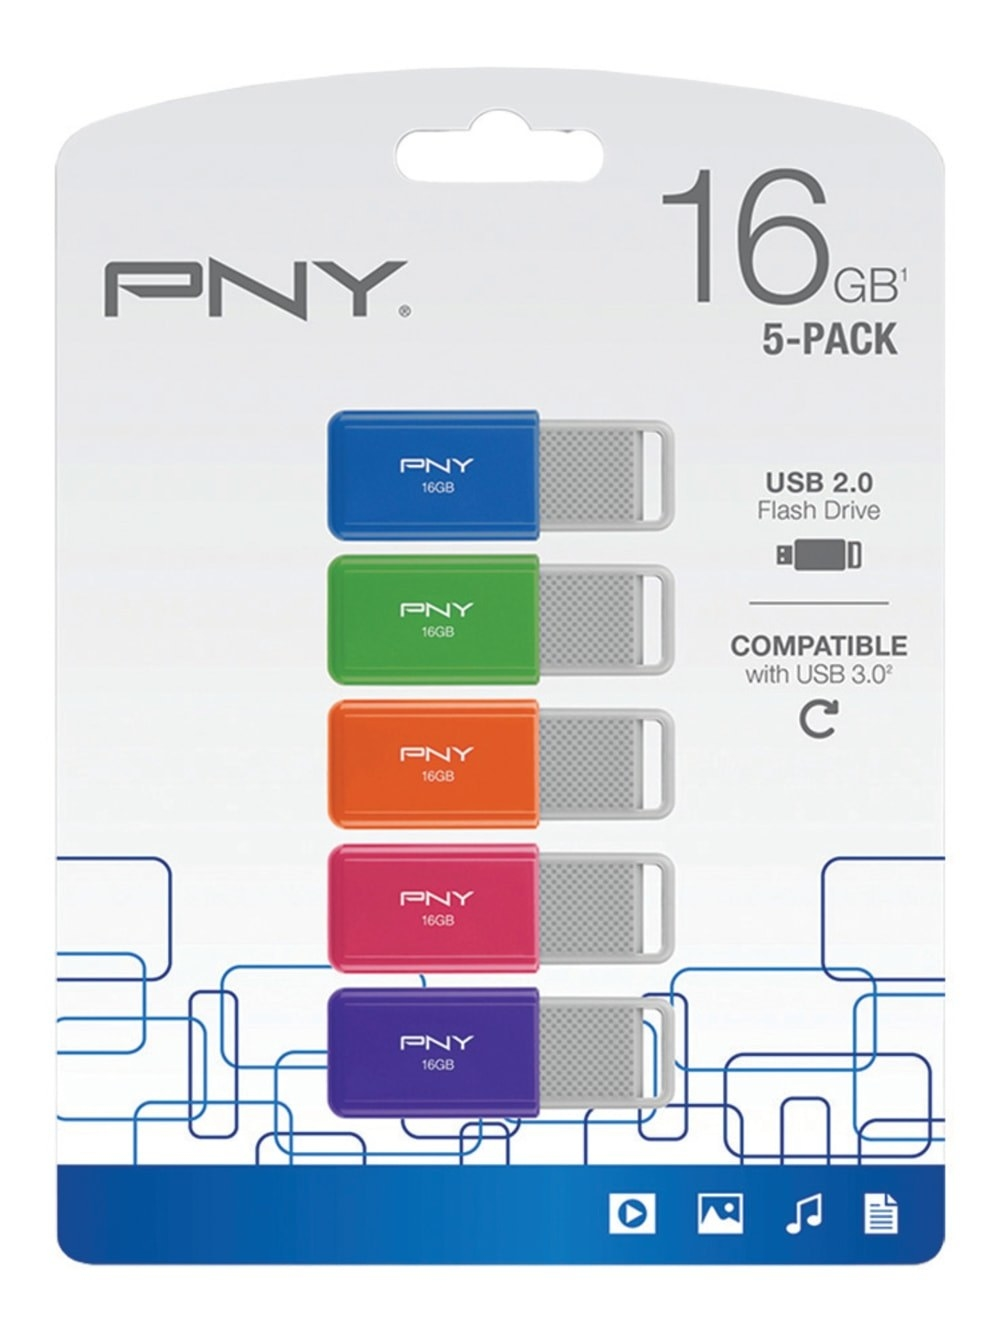 Five flash drives in different colors: blue, green, orange, pink, and purple